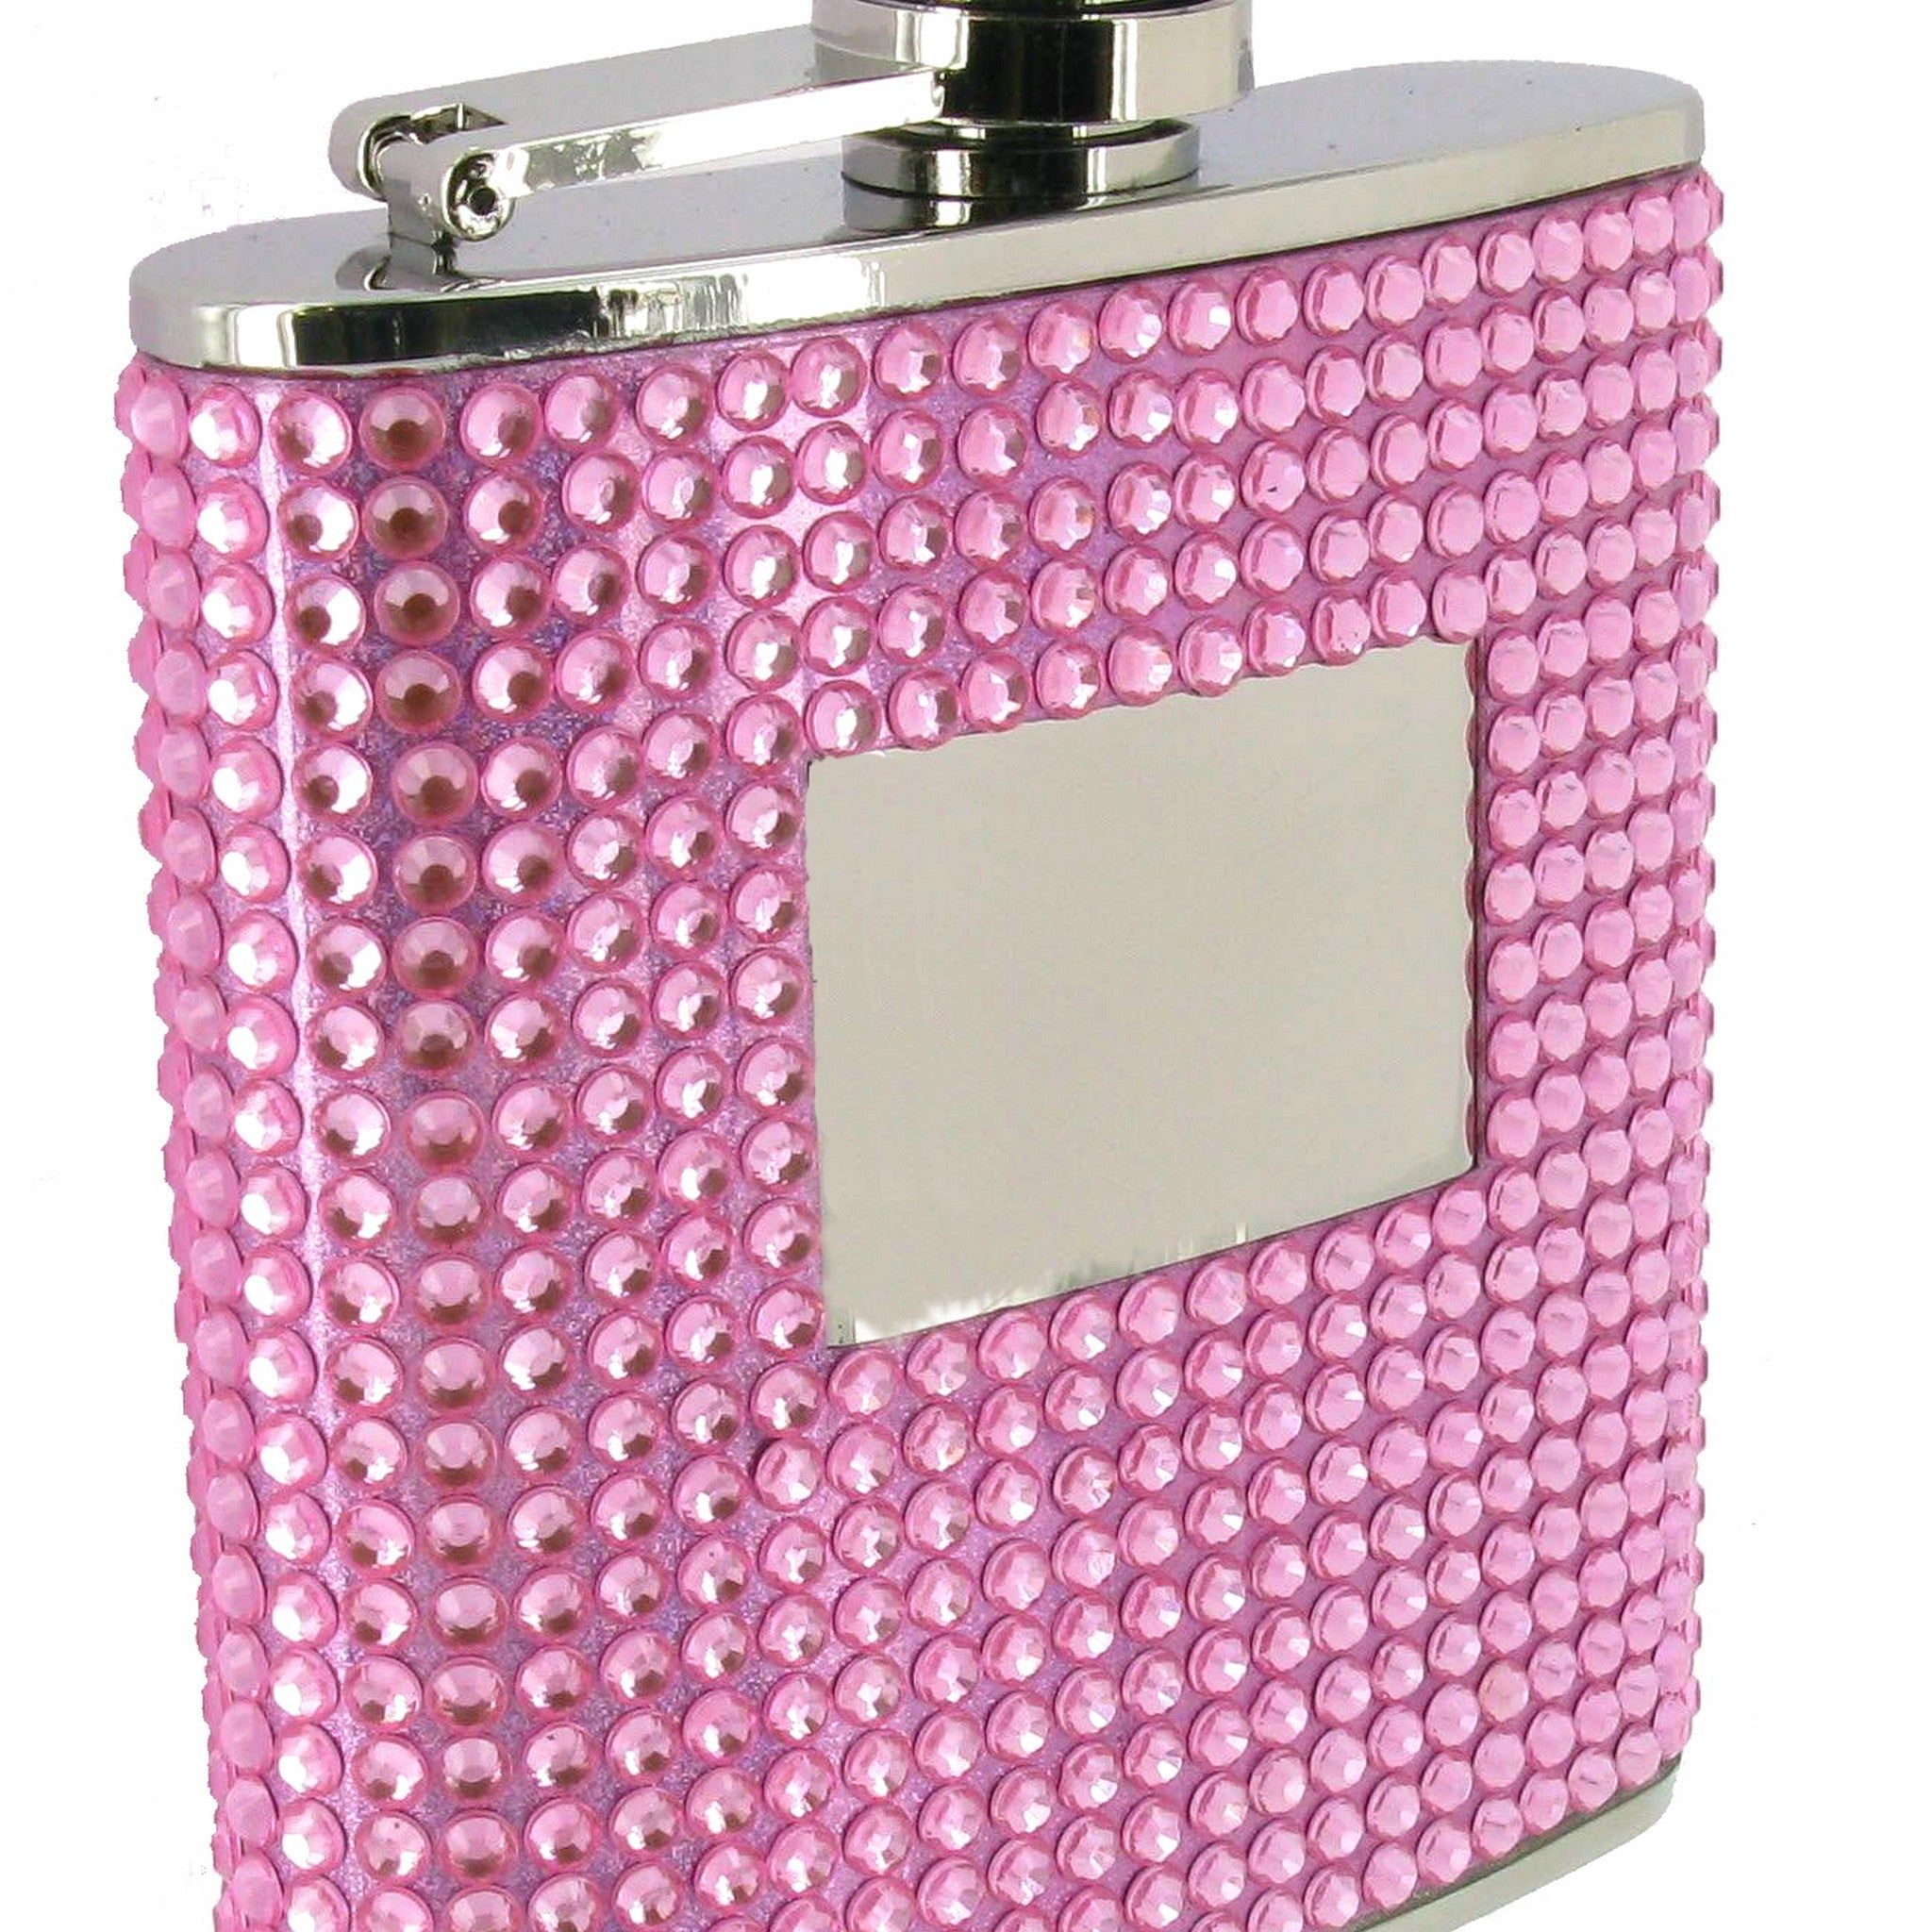 Pink Bling Decal Hip Flask 6oz with Engraving Plate